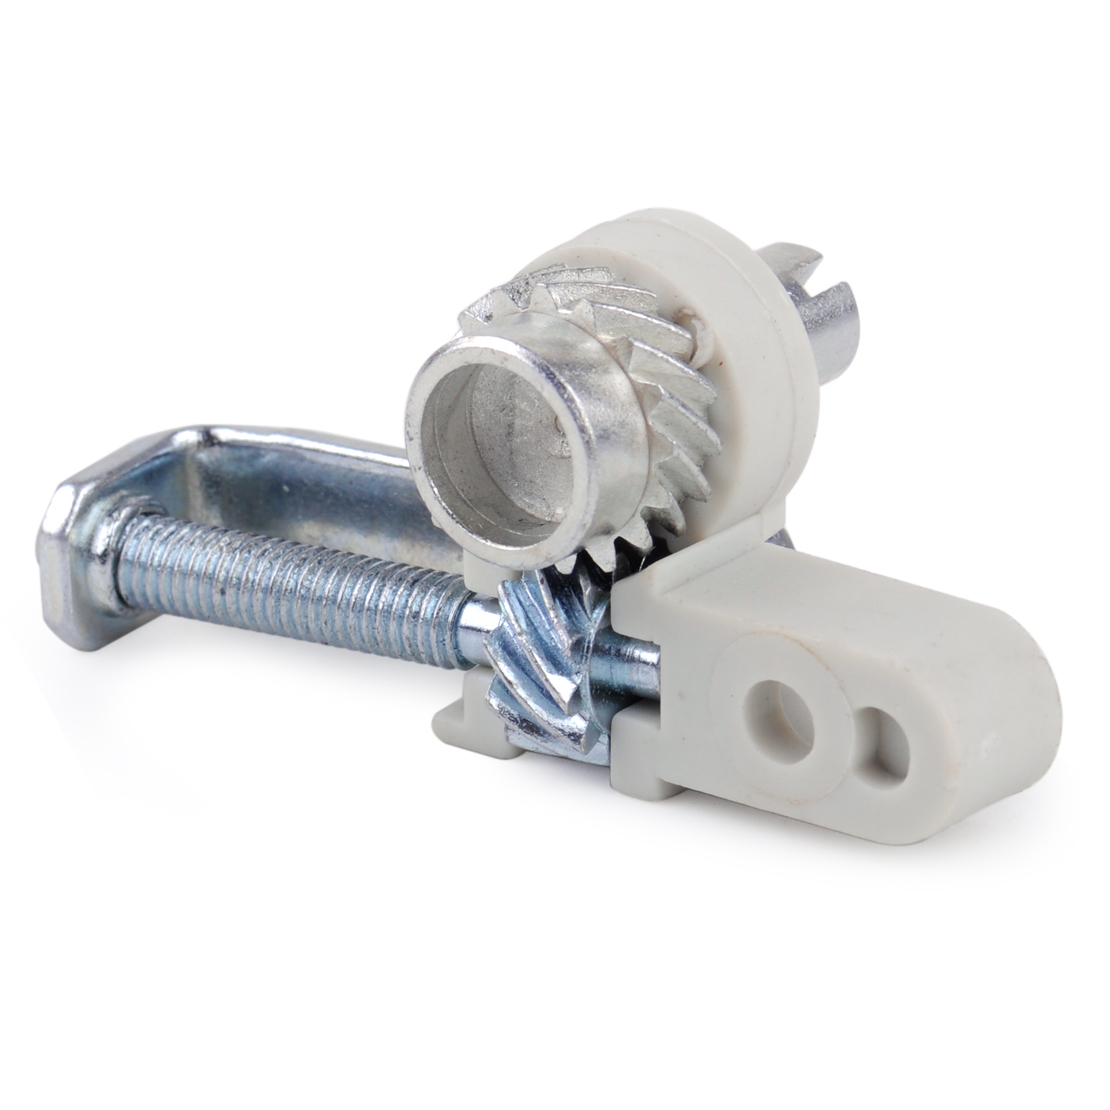 LETAOSK  Chainsaw Chain Adjuster Tensioner Adjustment Screw Fit For Stihl 021 023 025 MS210 MS230 MS250 Chainsaw